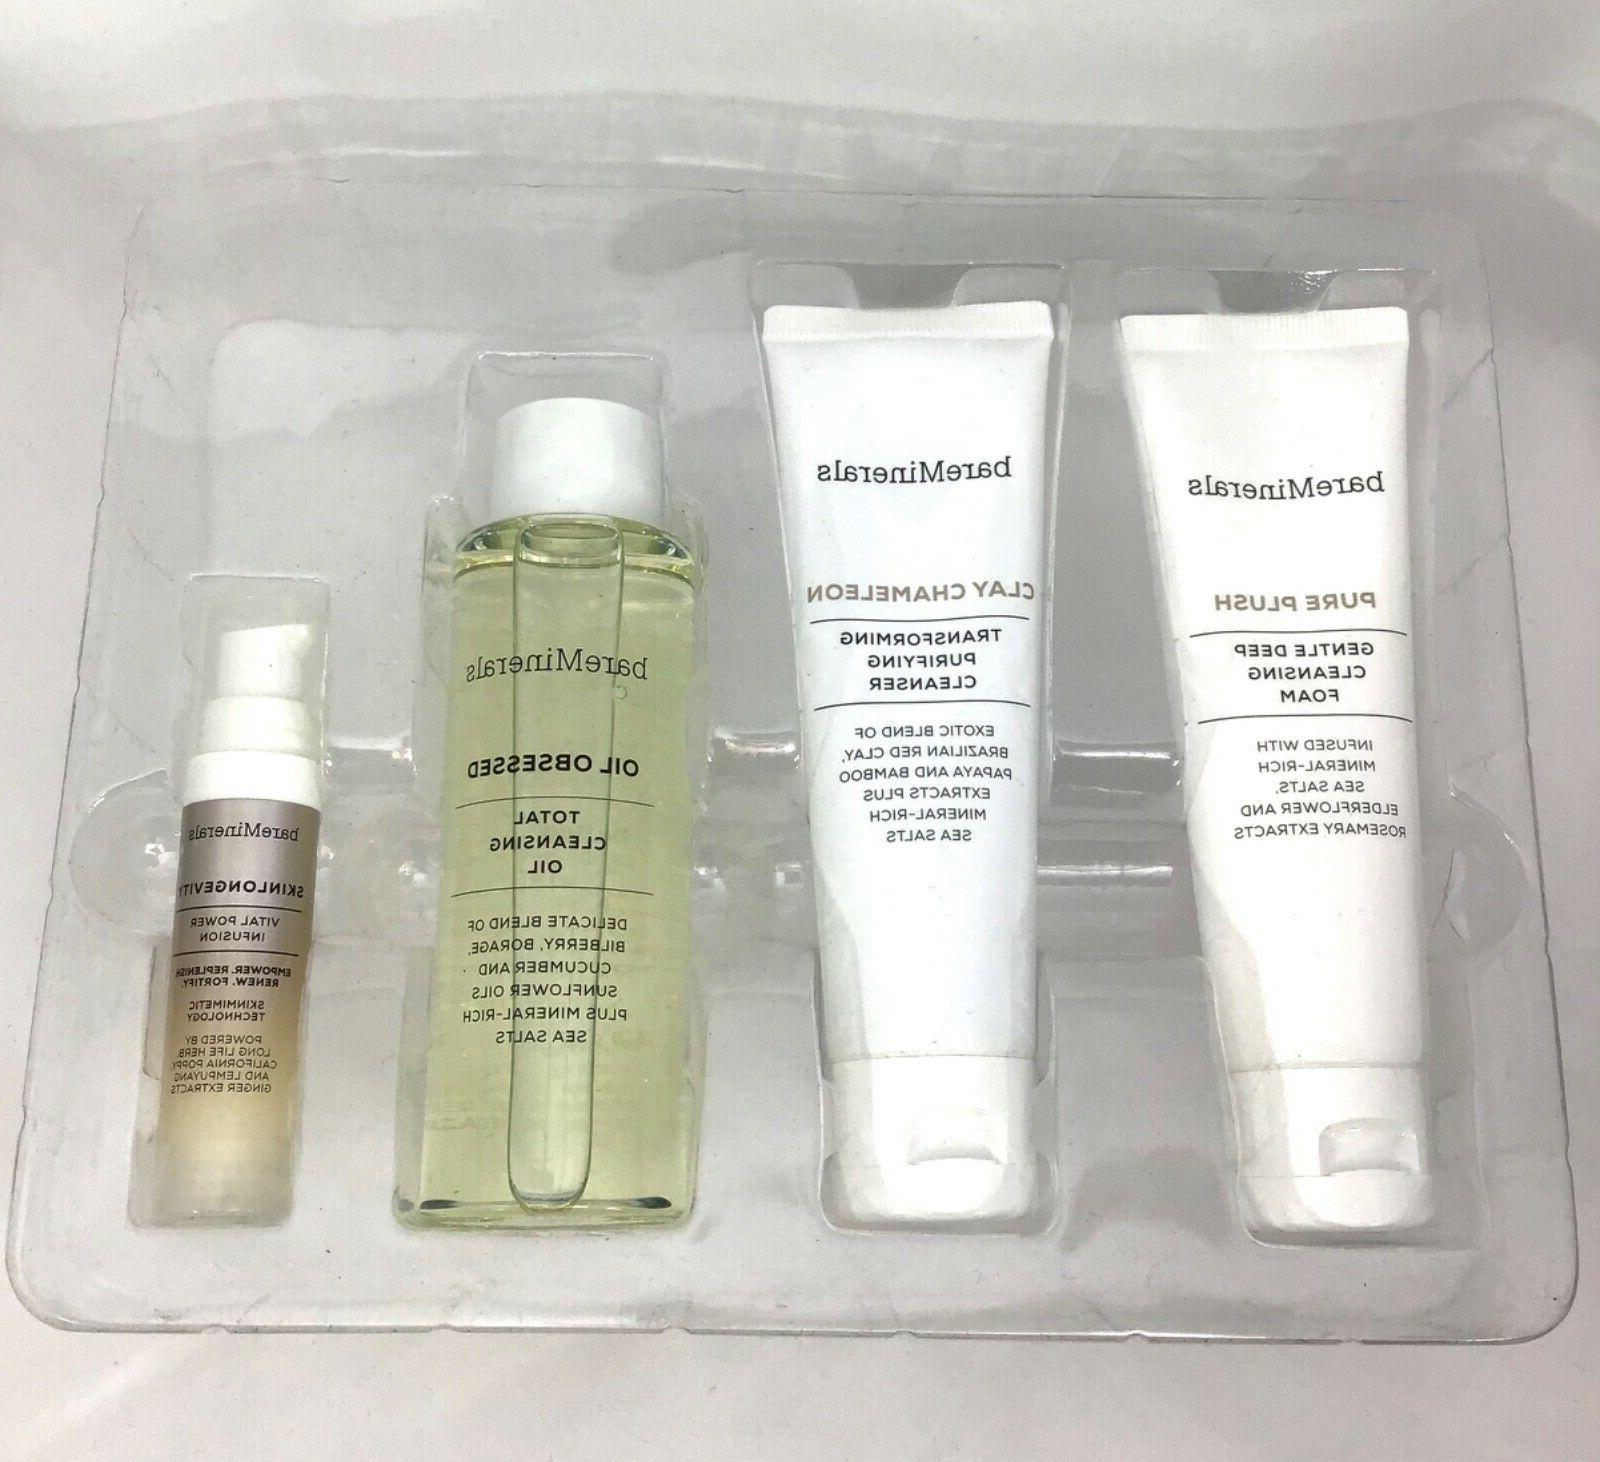 skinsorials trio of purifying facial cleansers set